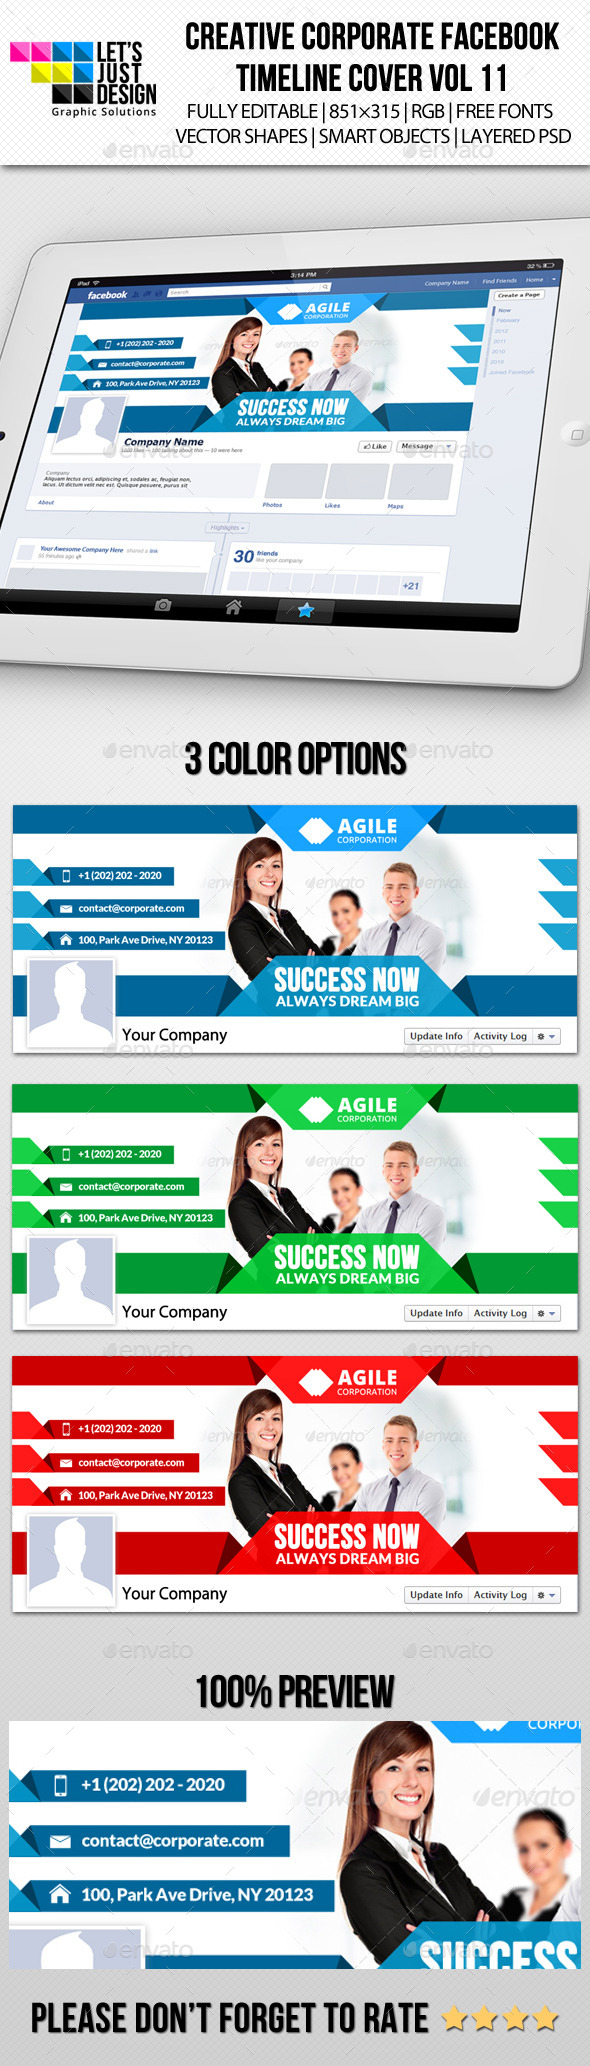 GraphicRiver Creative Corporate Facebook Timeline Cover Vol 11 9146213